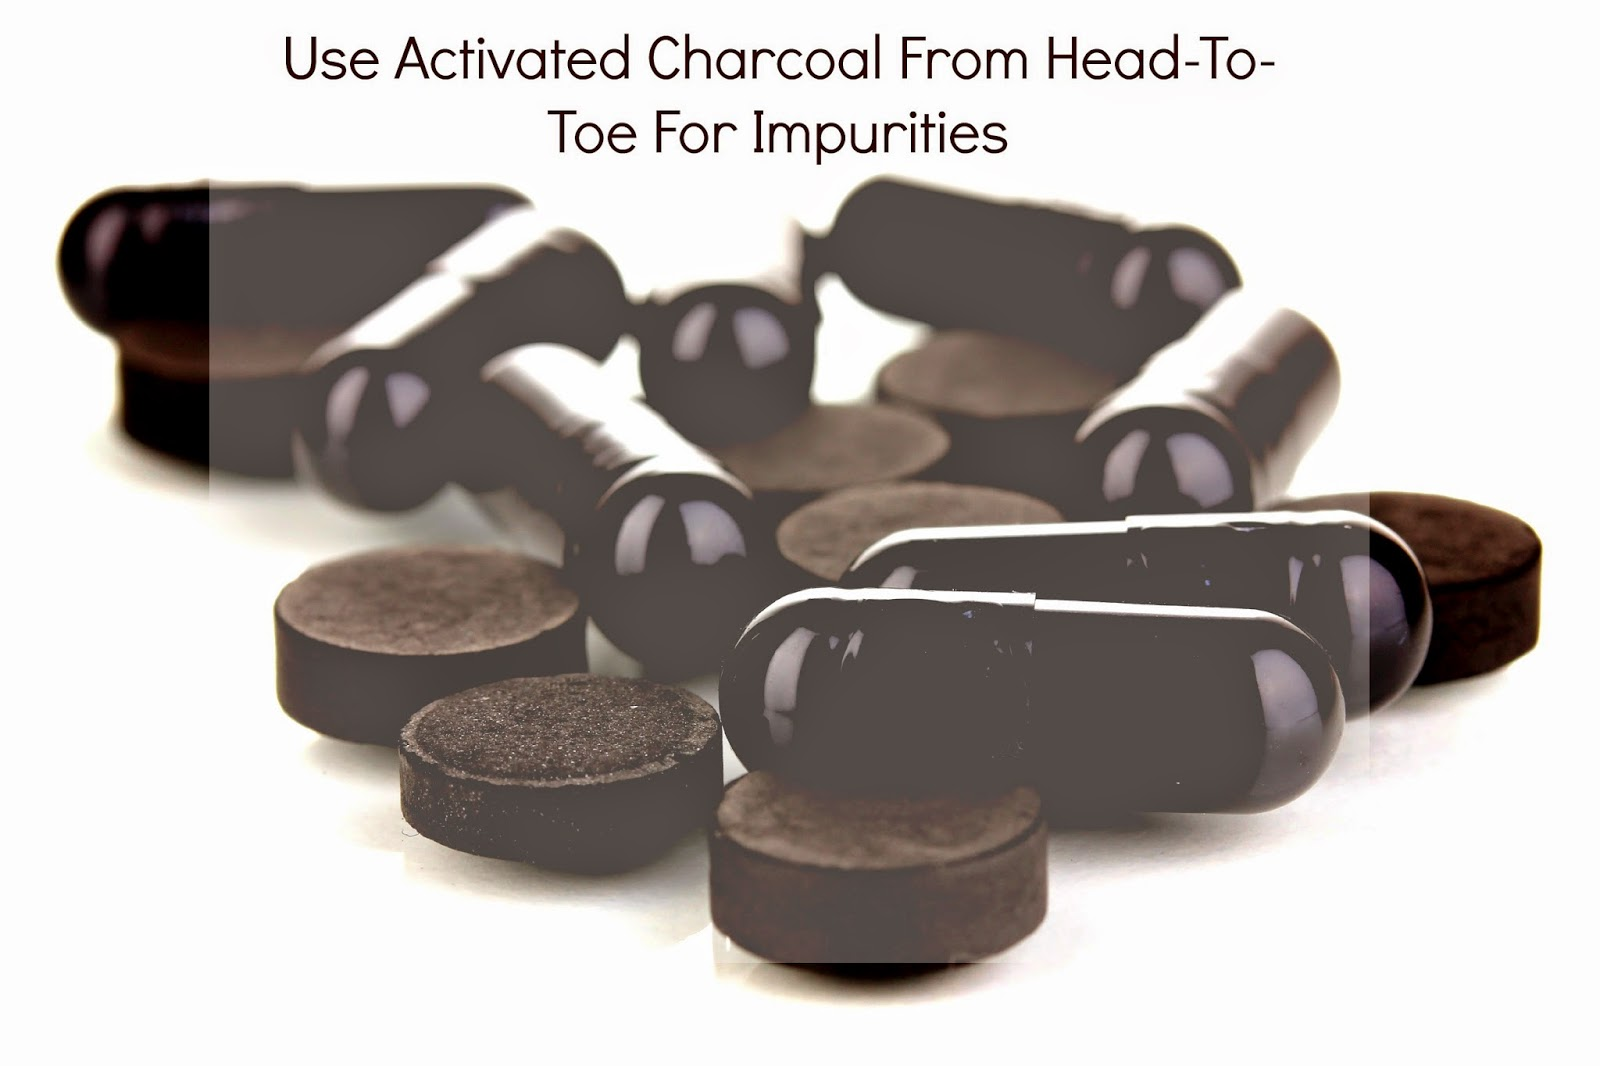 Use Activated Charcoal From Head-To-Toe For Impurities